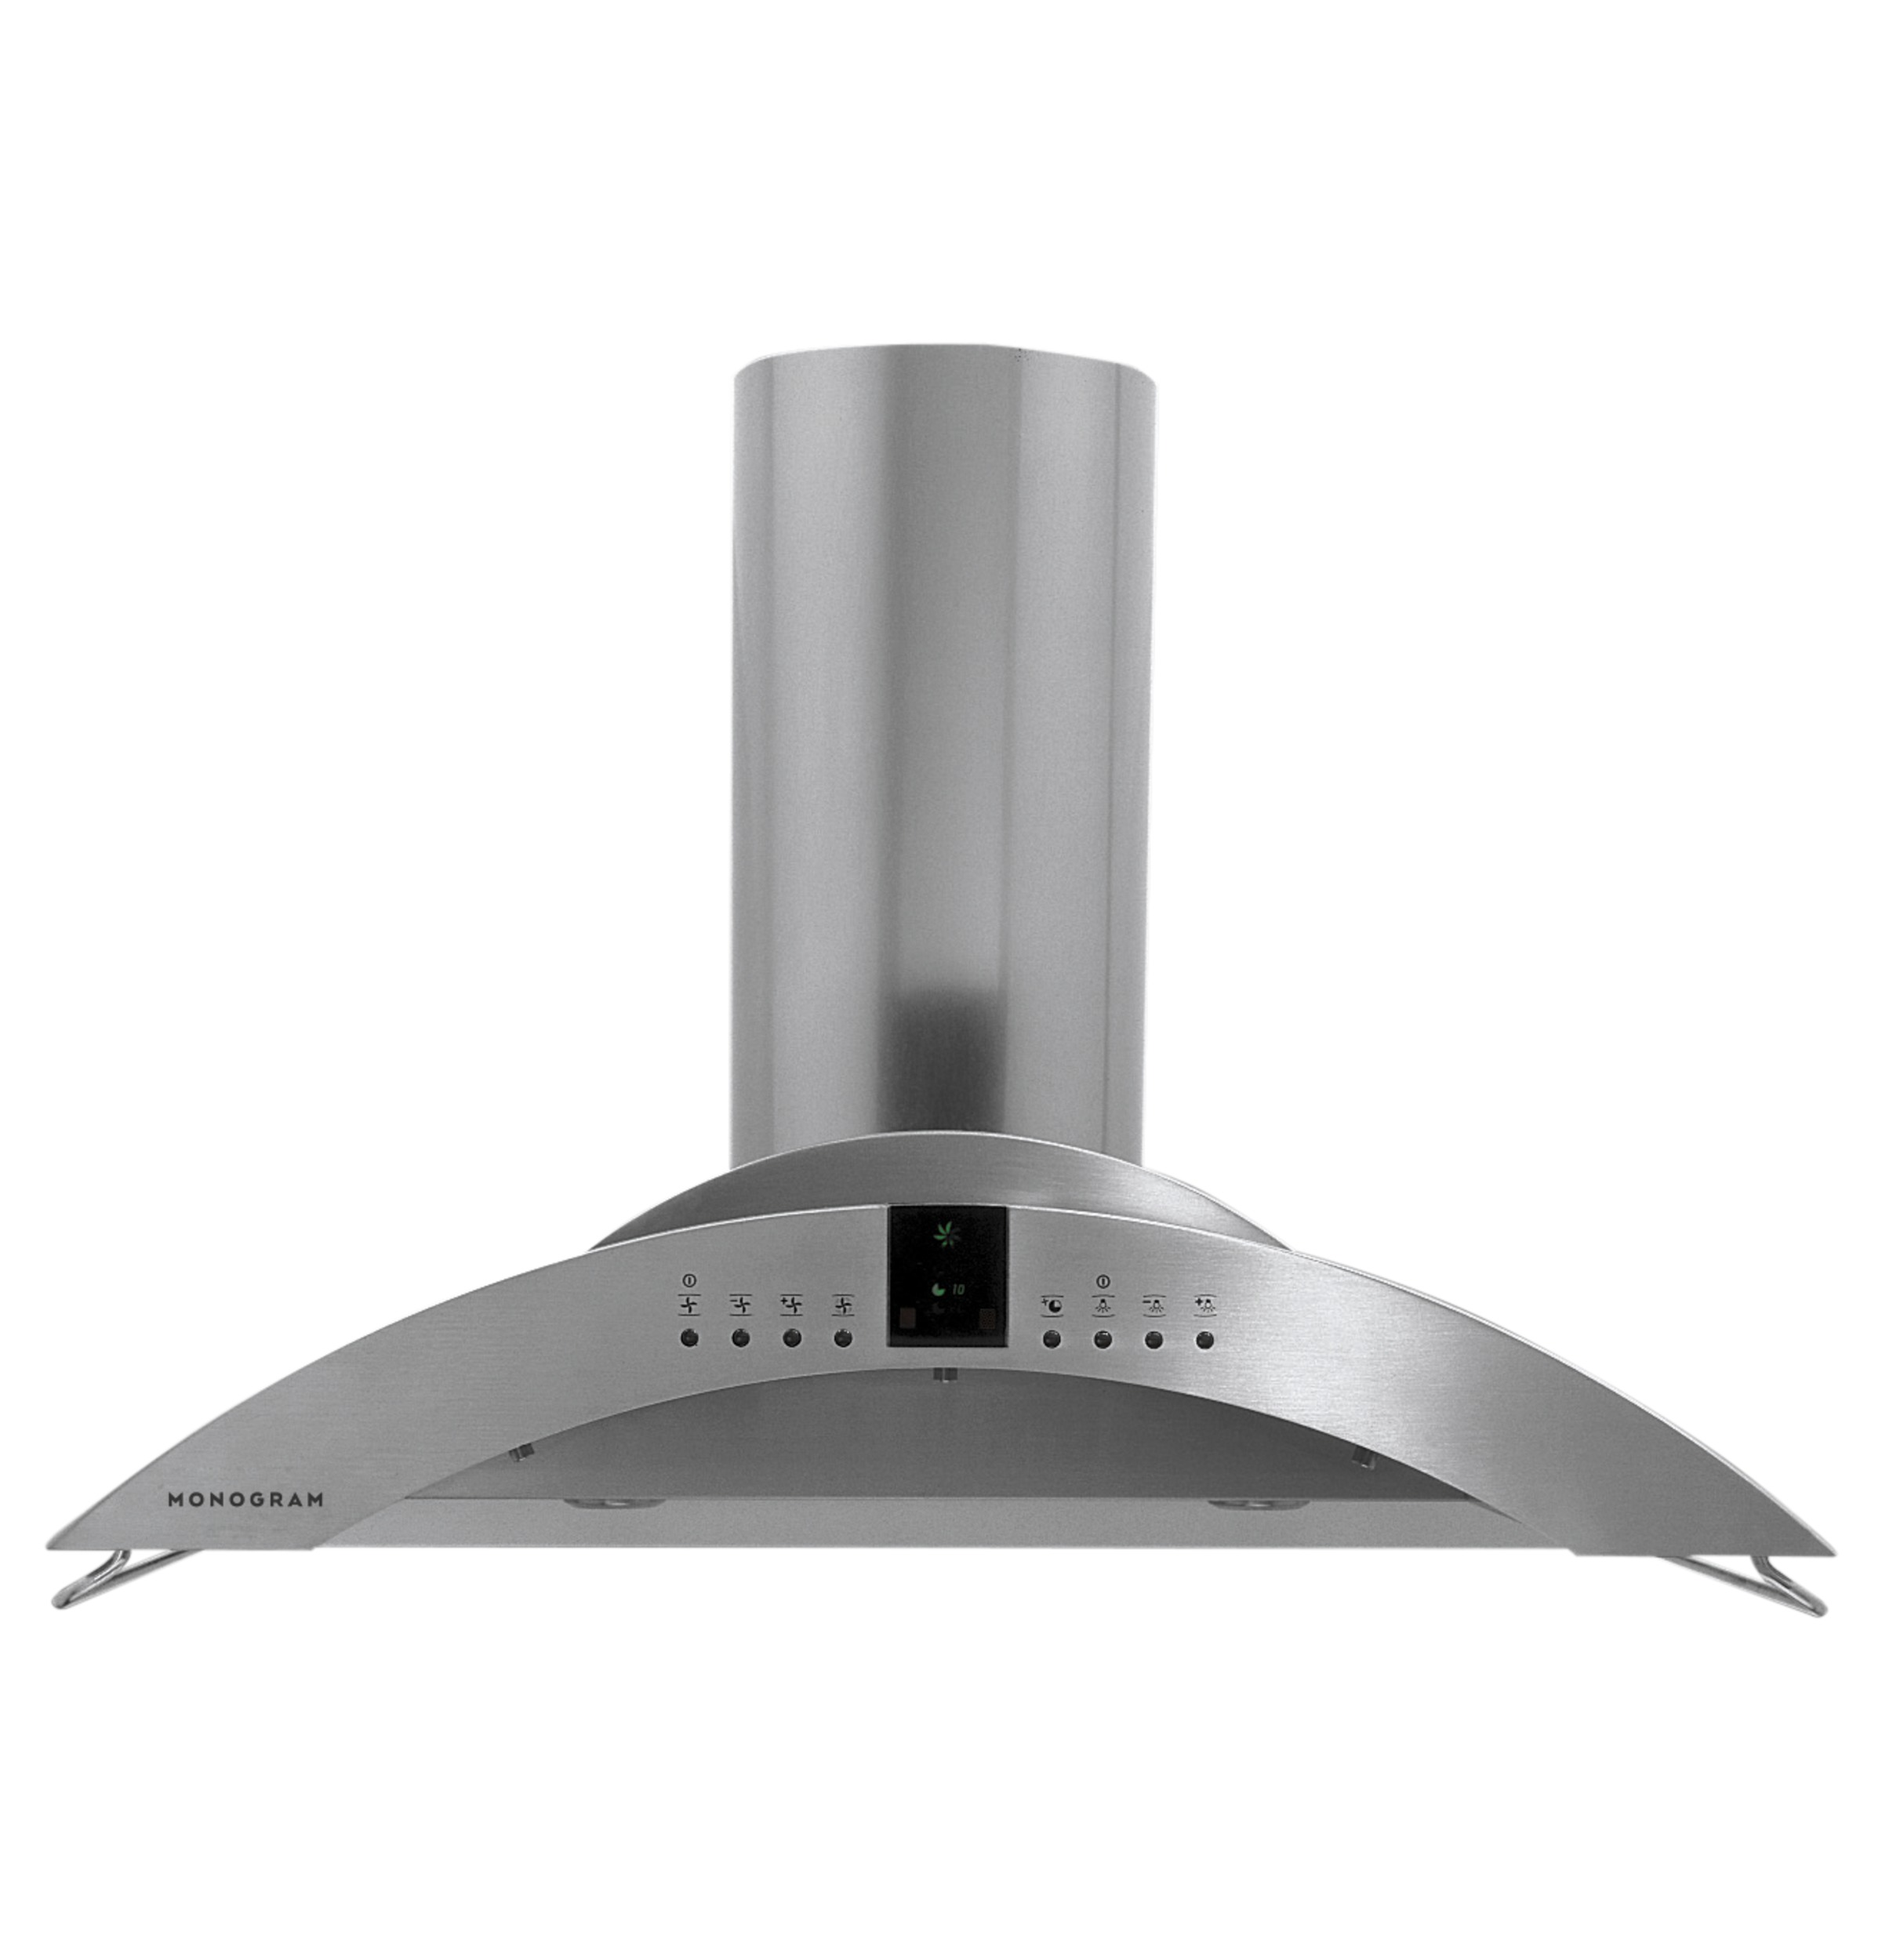 "Model: ZV750SPSS | Monogram Monogram 36"" Wall-Mounted Vent Hood"